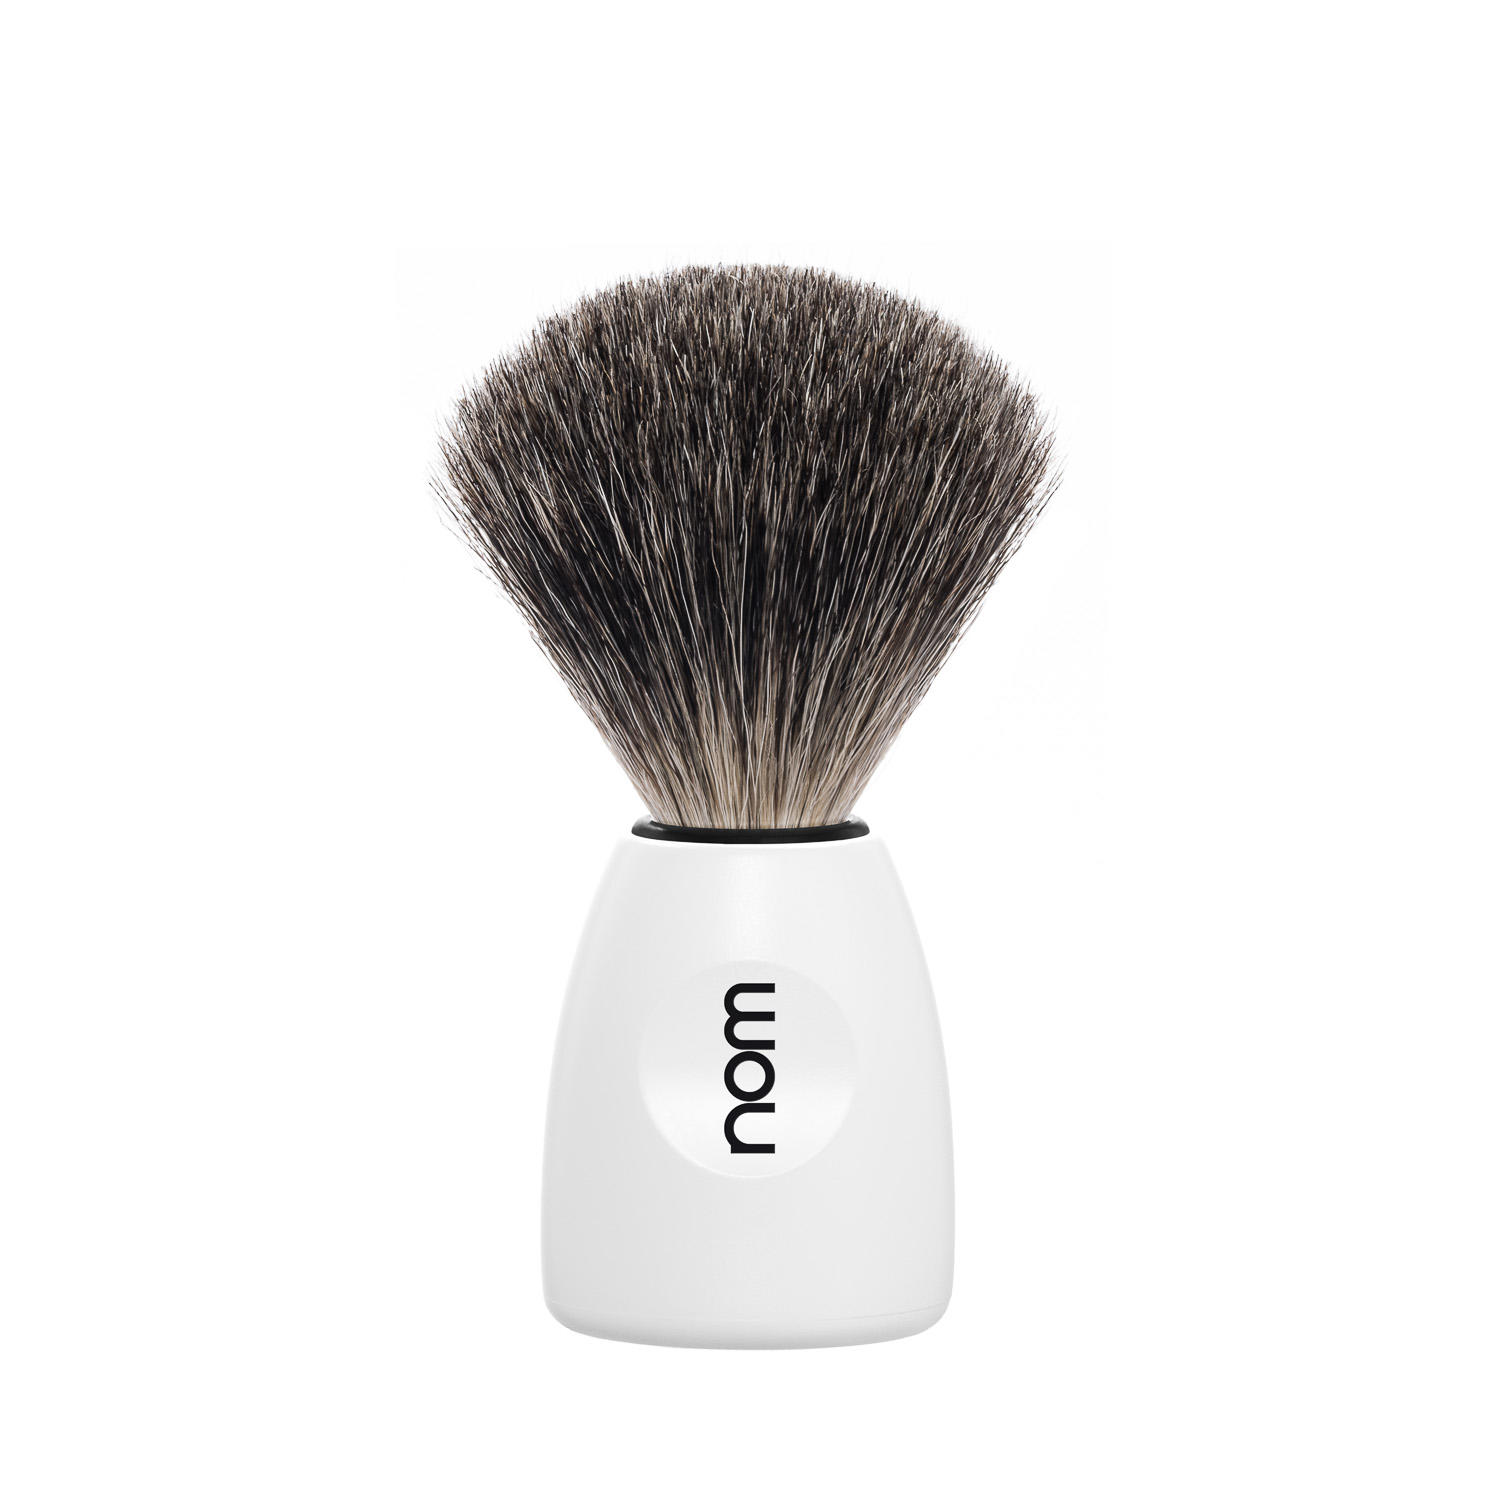 LASSE81WH NOM, LASSE white, pure badger shaving brush